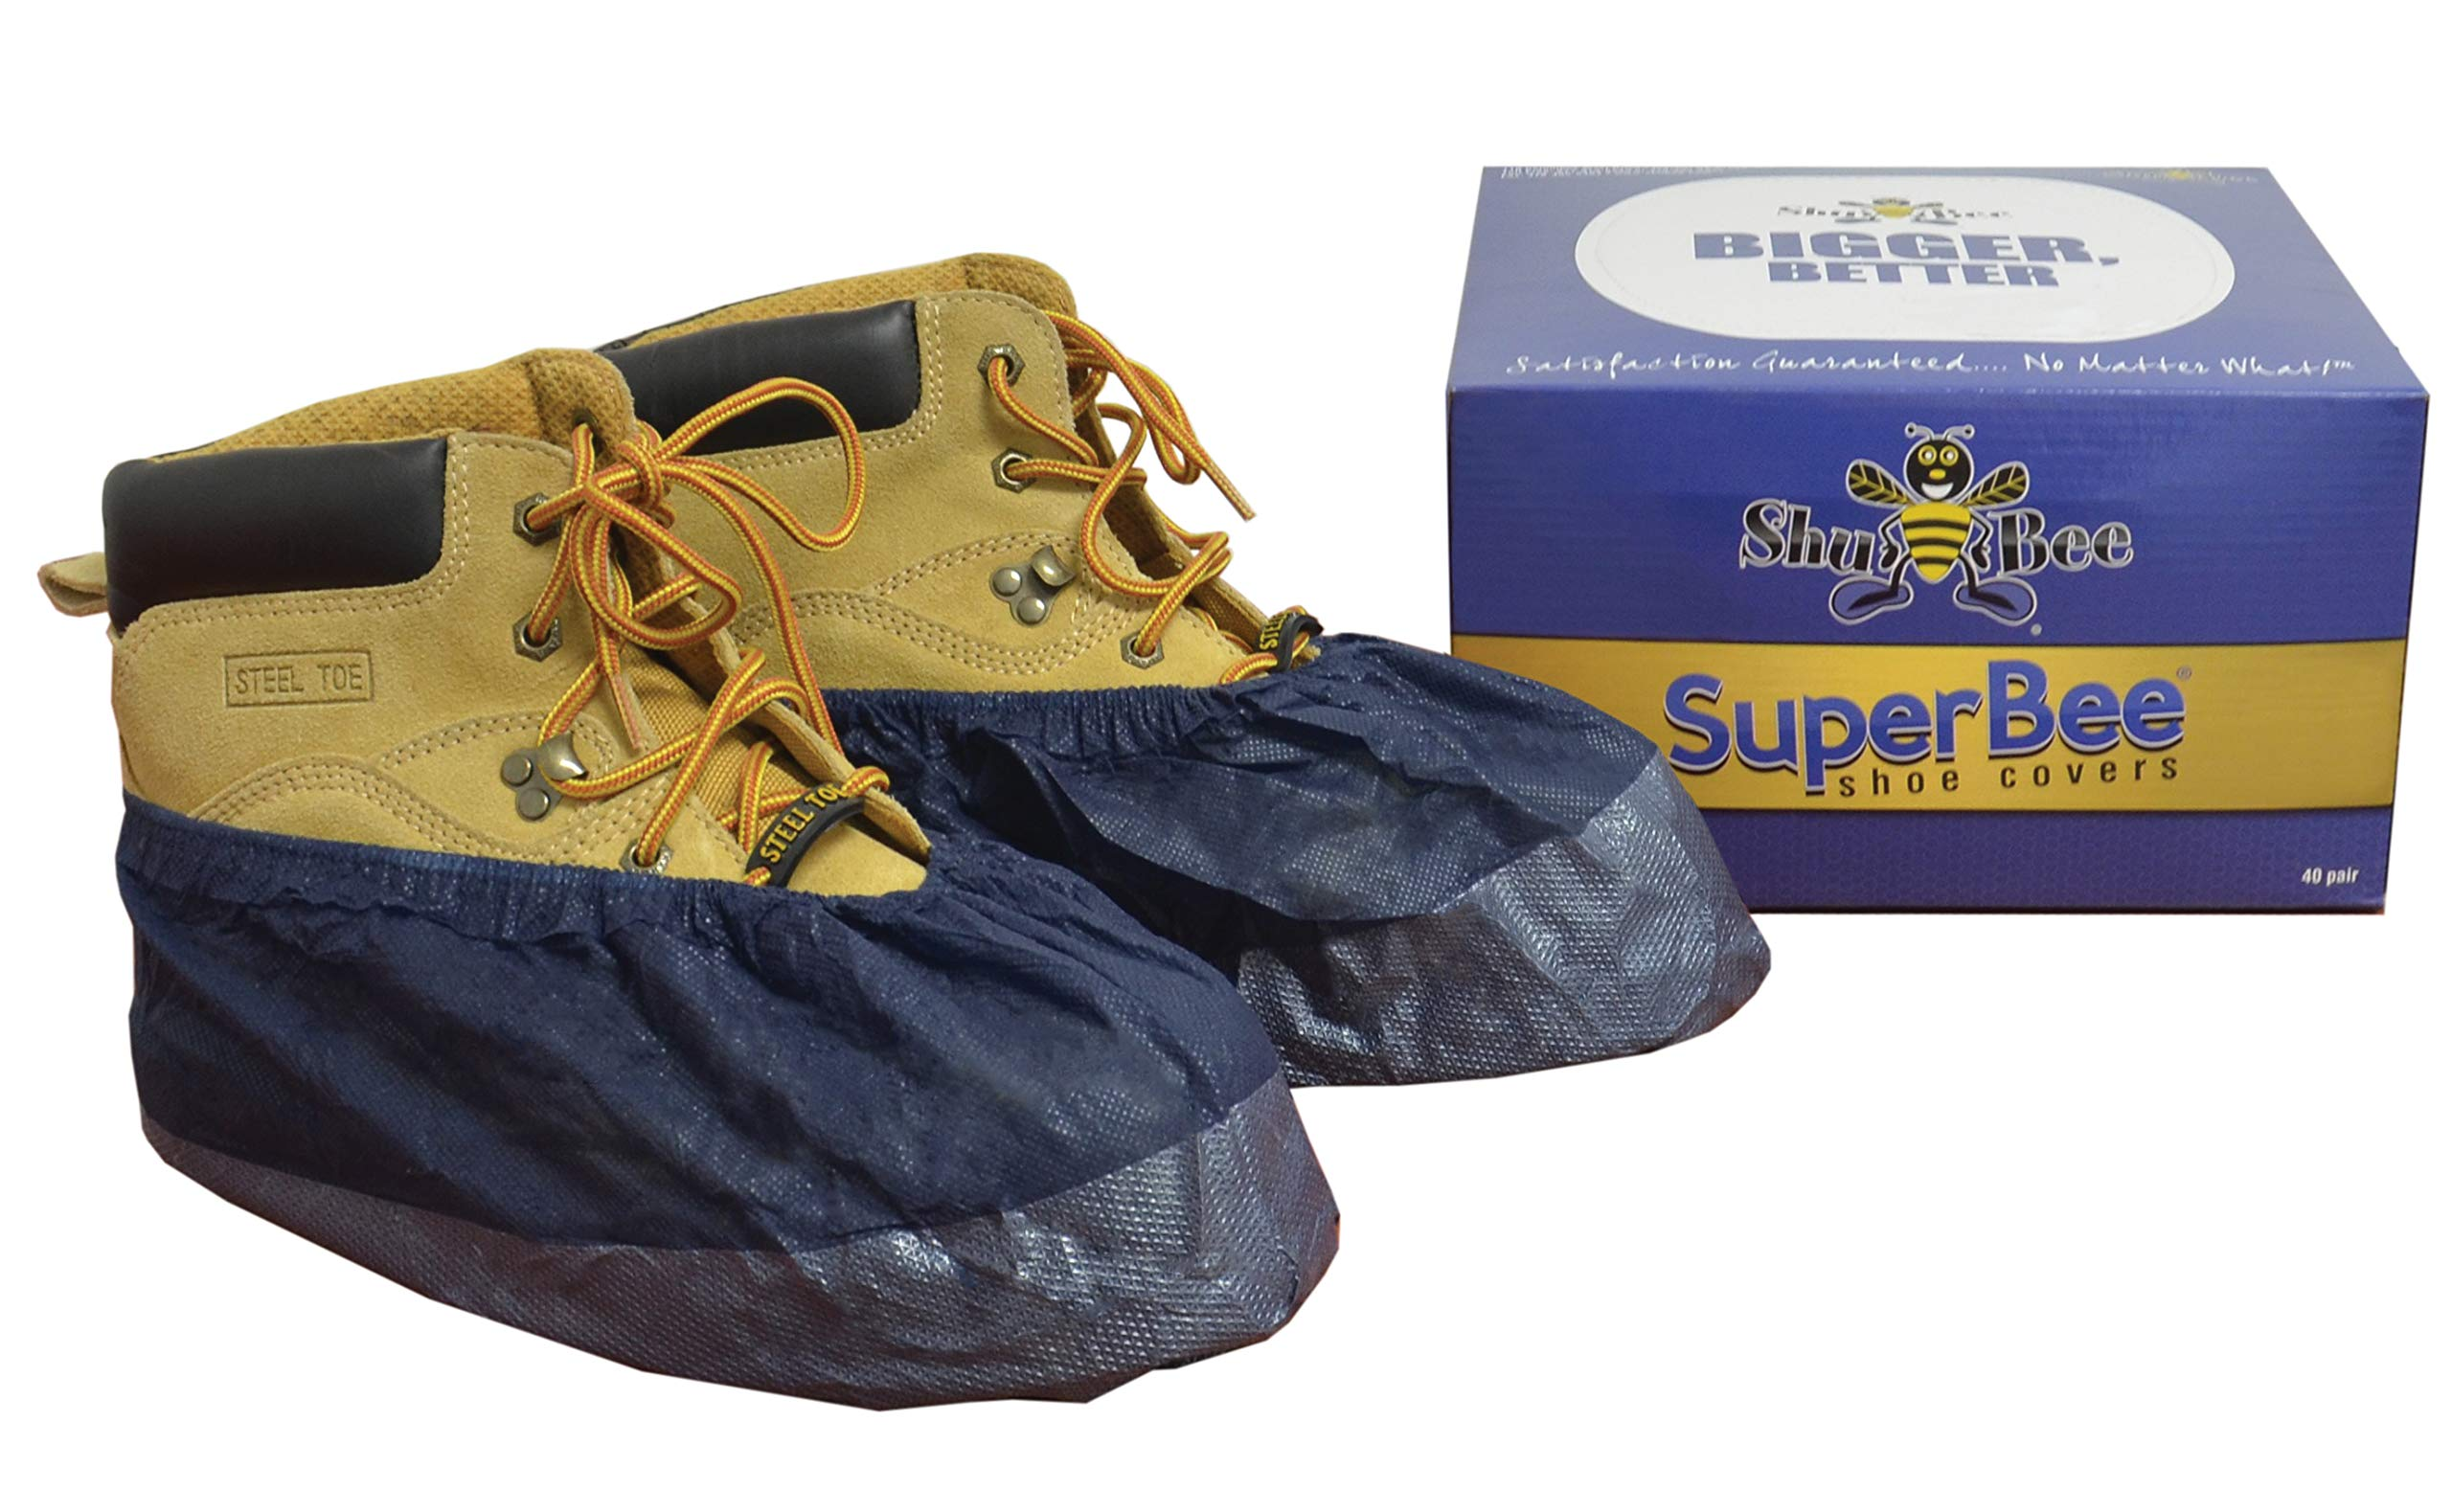 ShuBee SuperBee Shoe Covers, Midnight Blue (40 Pair)